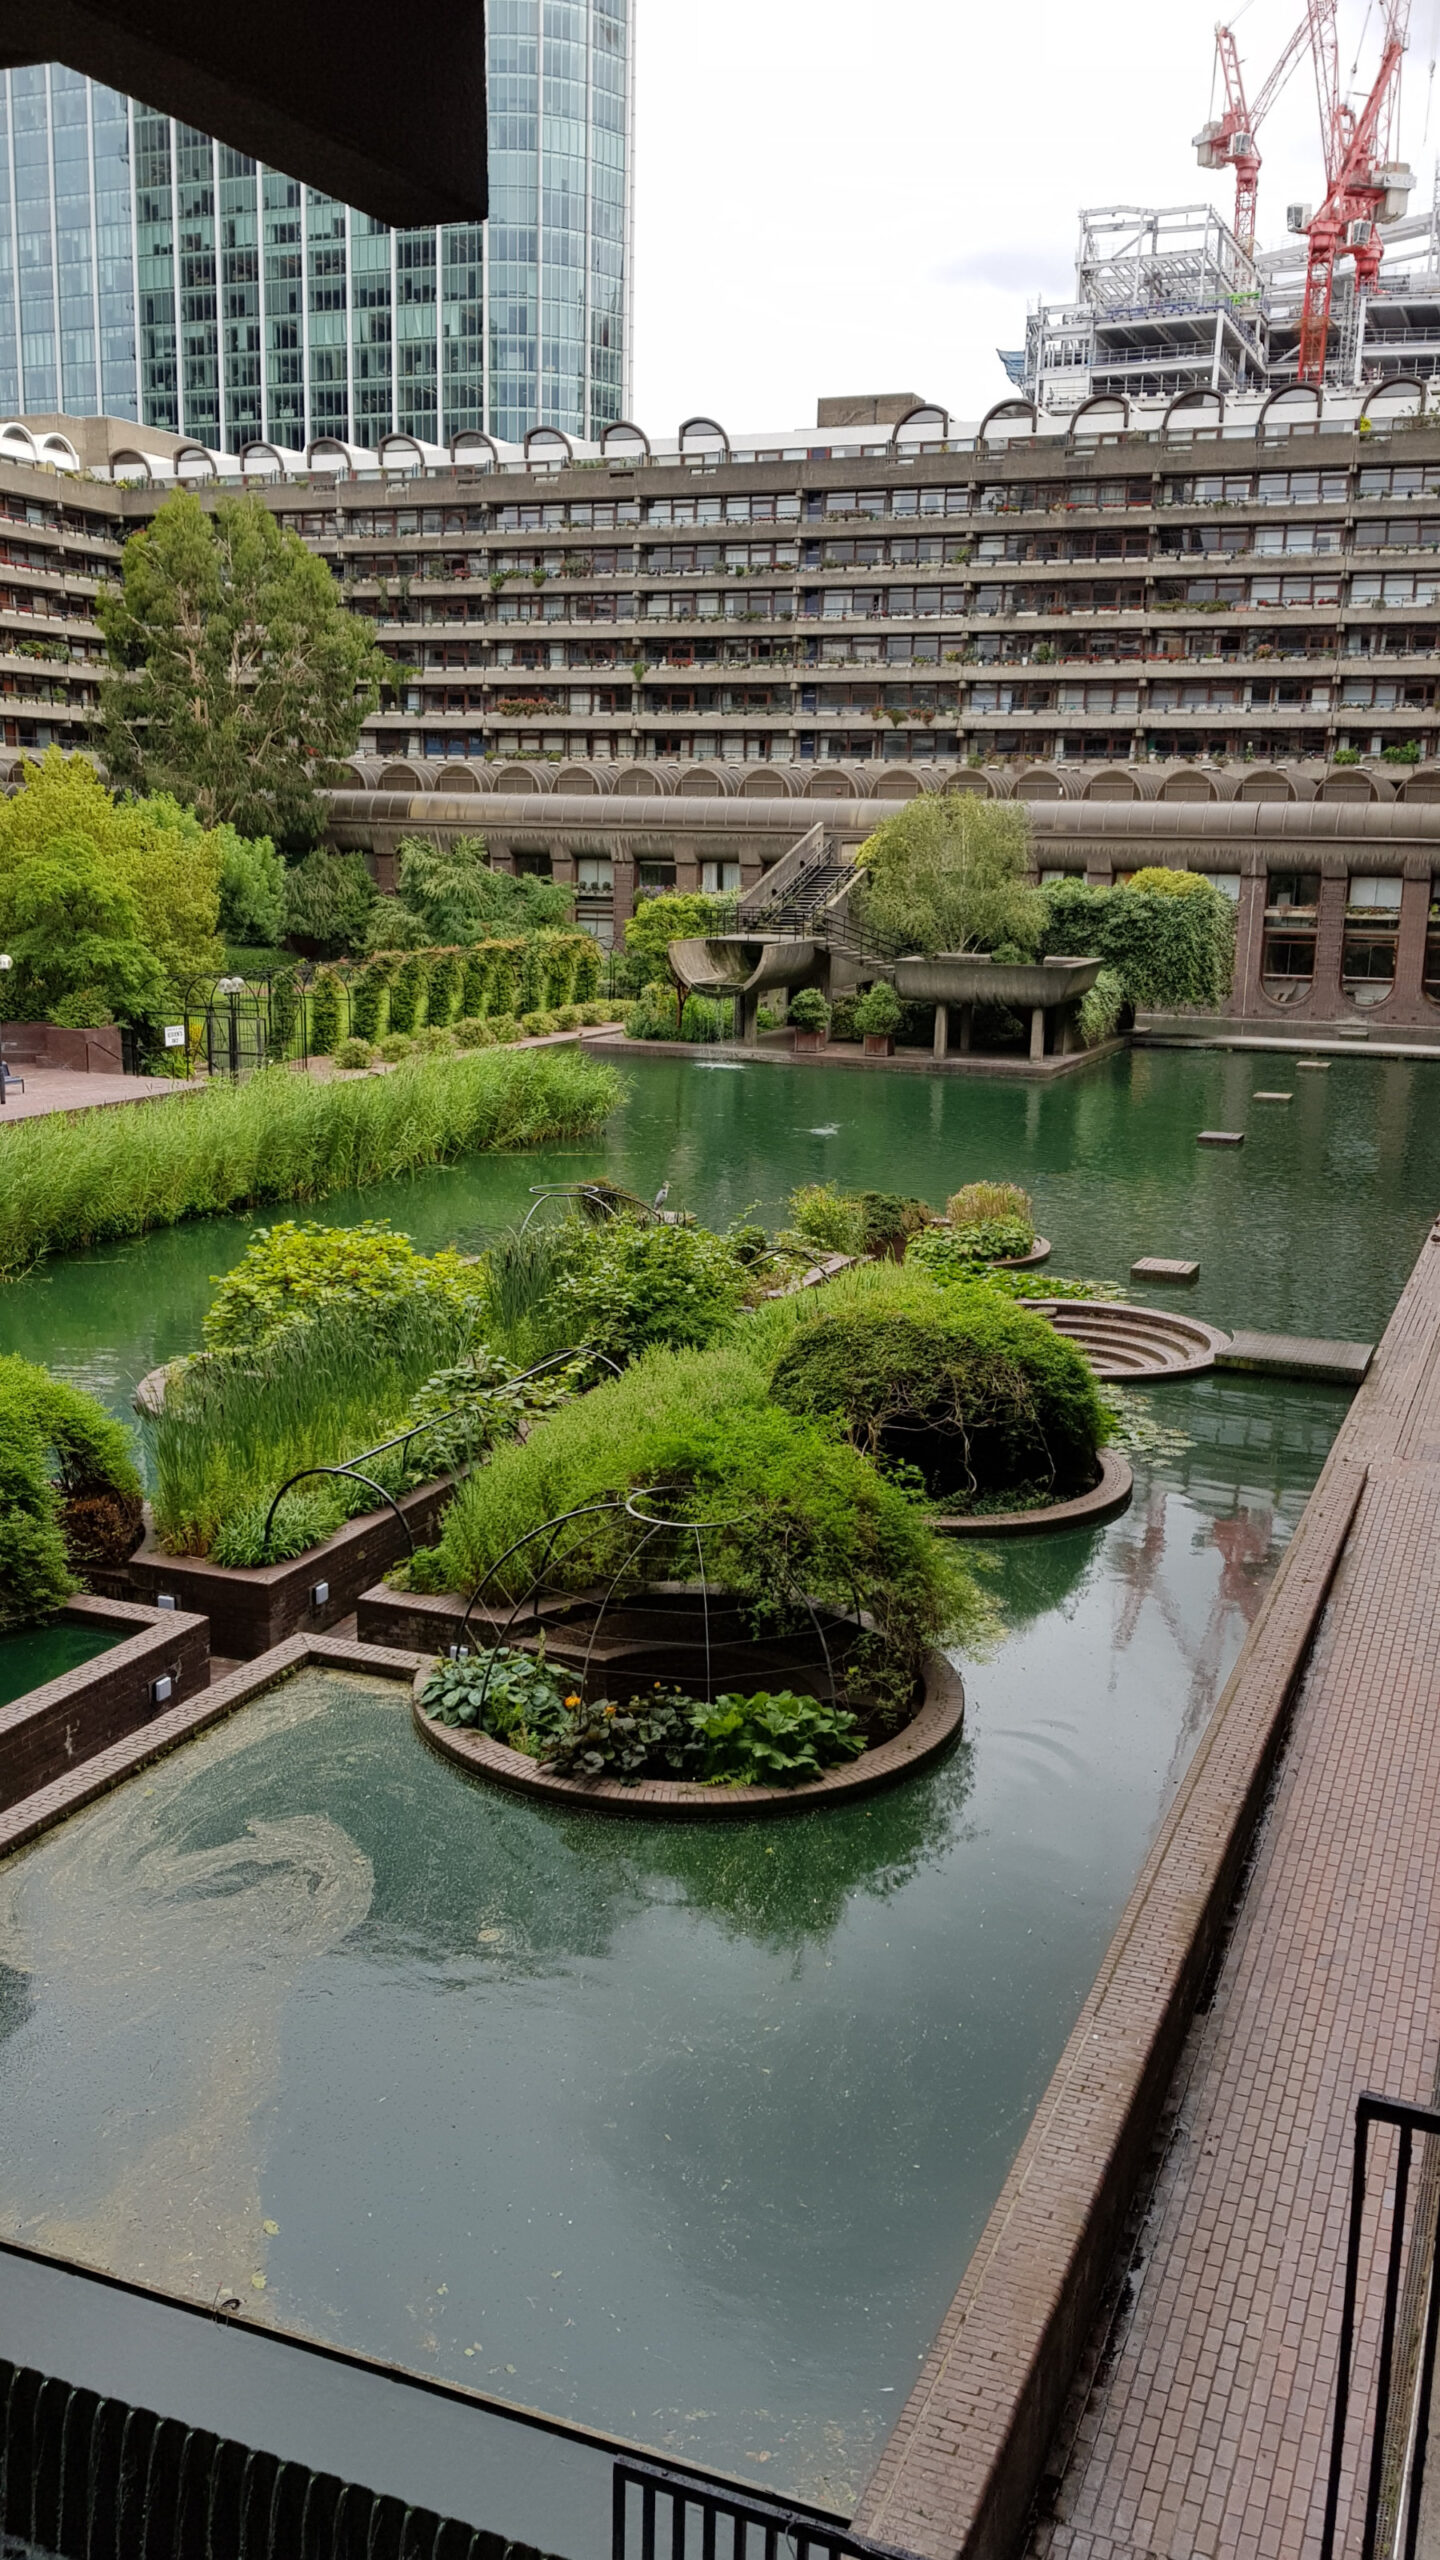 The Barbican, Brutalism at its best